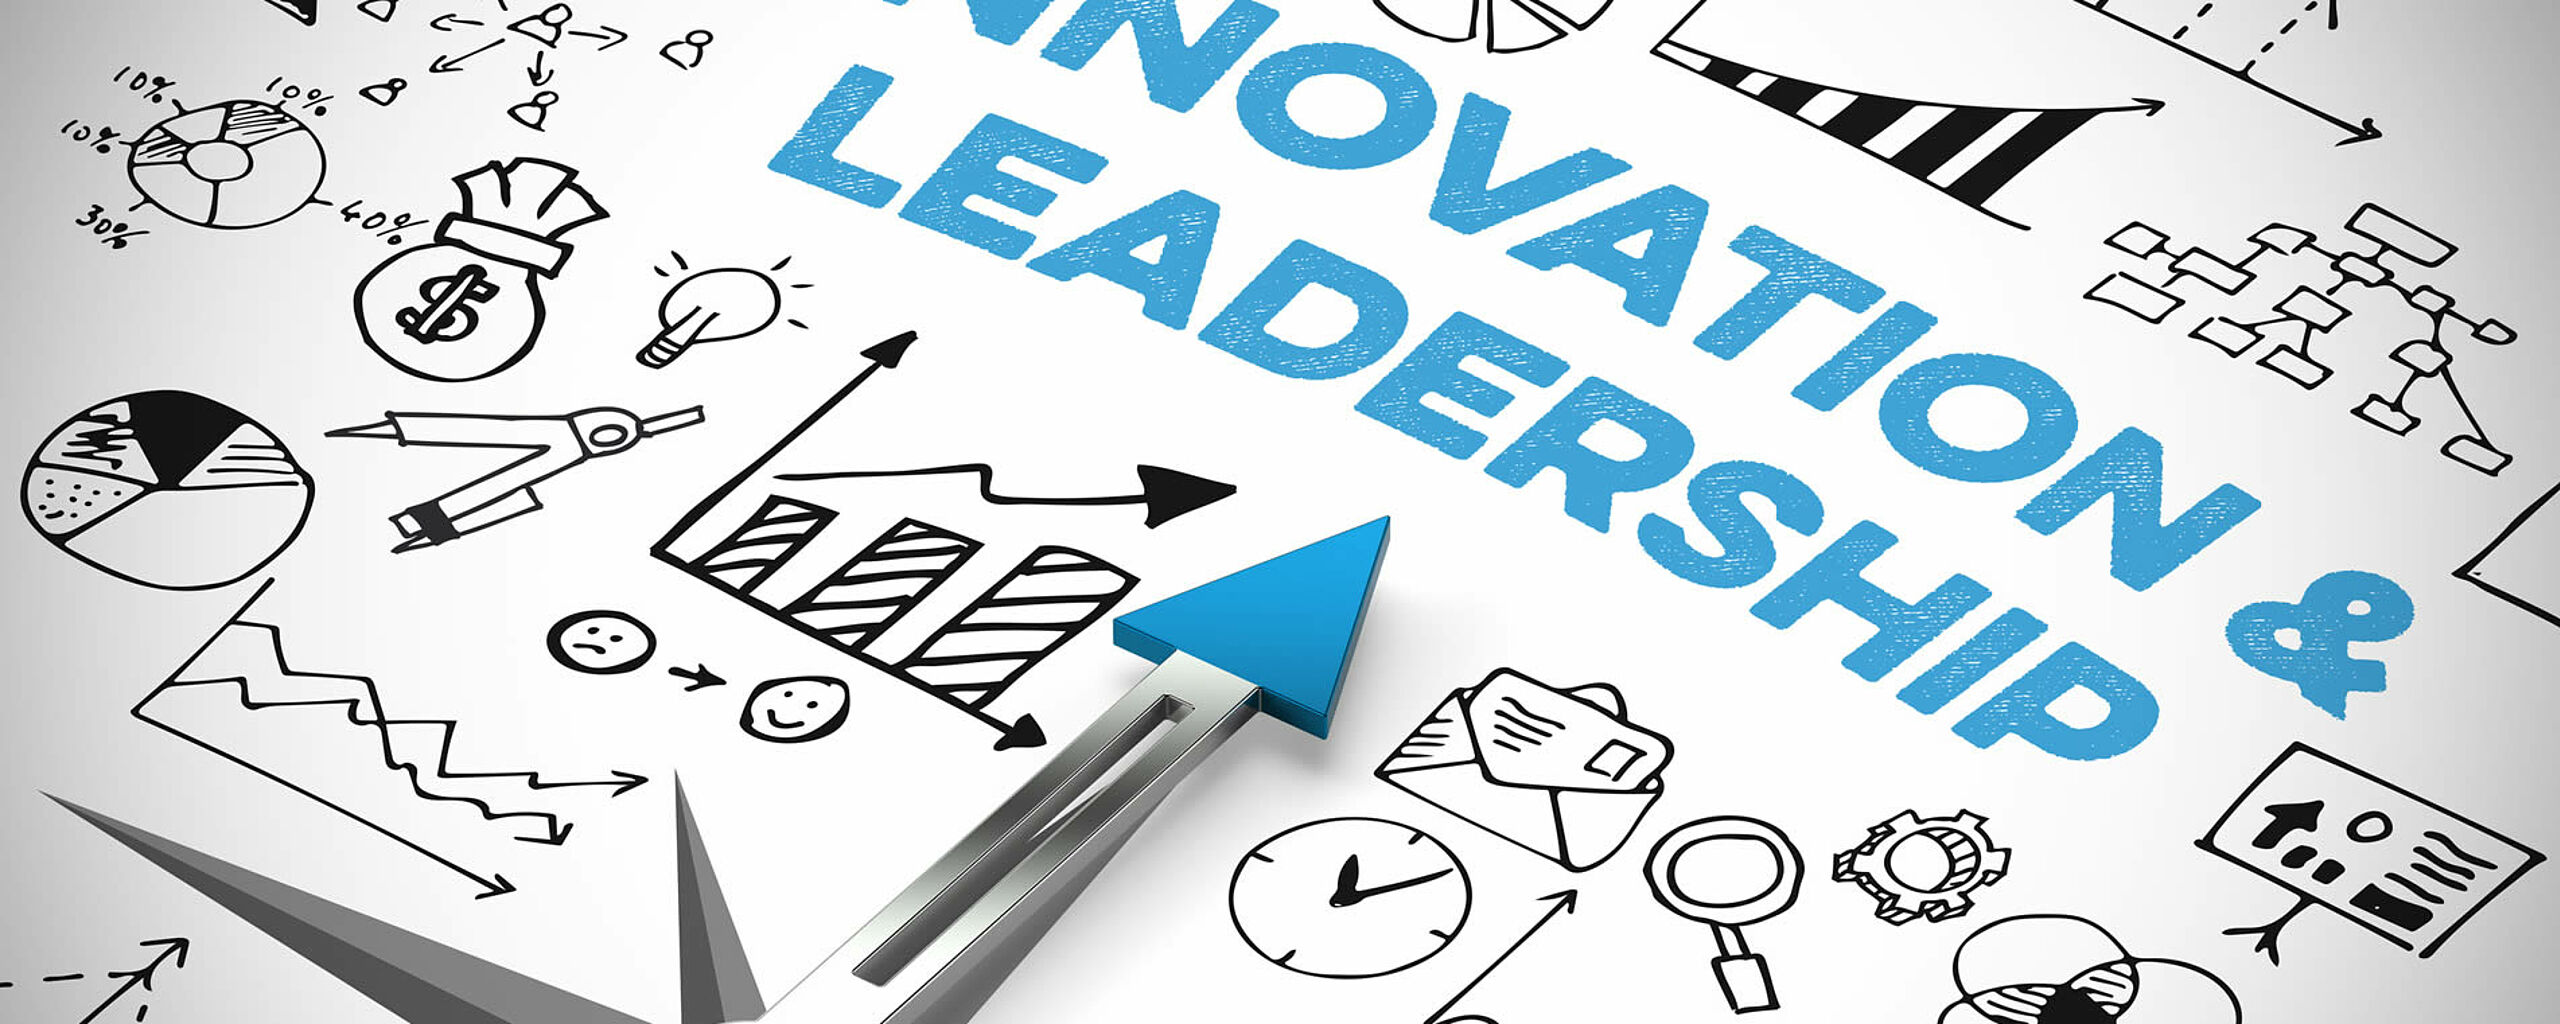 Leadership & Innovation - Grafik, c Fotolia